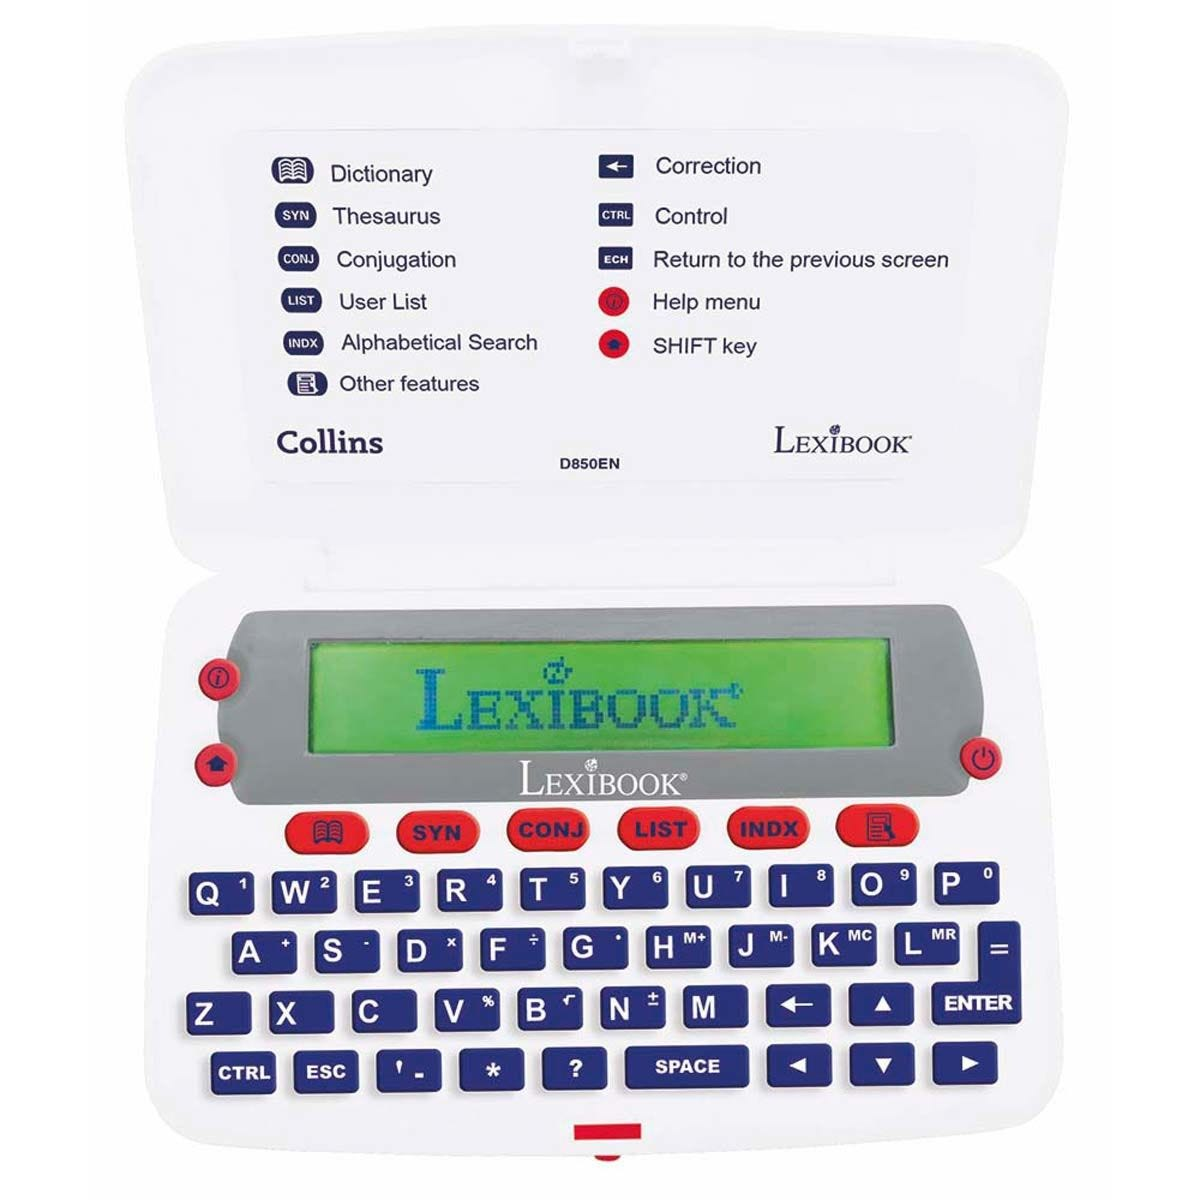 Lexibook Collins English Electronic Dictionary with Thesaurus - White